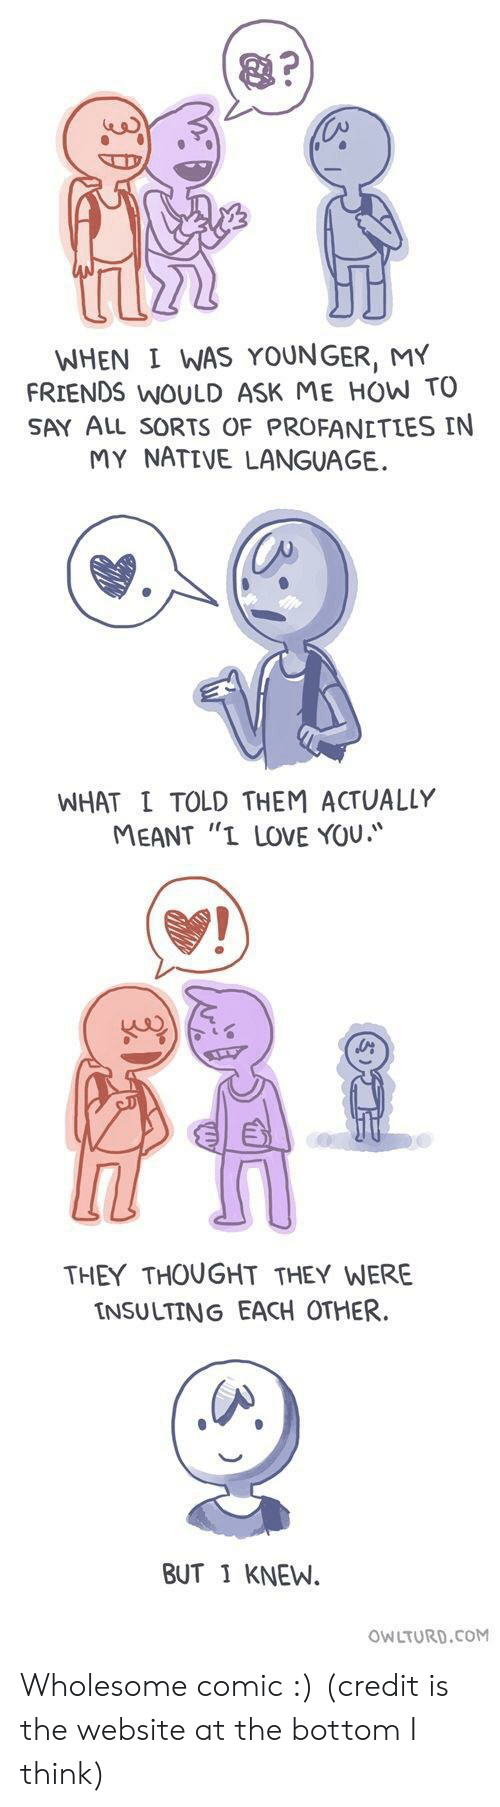 """Friends, Love, and I Love You: WHEN I WAS YOUNGER, MY  FRIENDS WOULD ASK ME HOW TO  SAY ALL sORTS OF PROFANETLES IN  MY NATIVE LANGUAGE.  WHAT L TOLD THEM ACTUALLY  MEANT """"I LOVE YOU.  THEY THOUGHT THEY WERE  INSULTING EACH OTHER  BUT 1 KNEW.  OWLTURD.CoM Wholesome comic :) (credit is the website at the bottom I think)"""